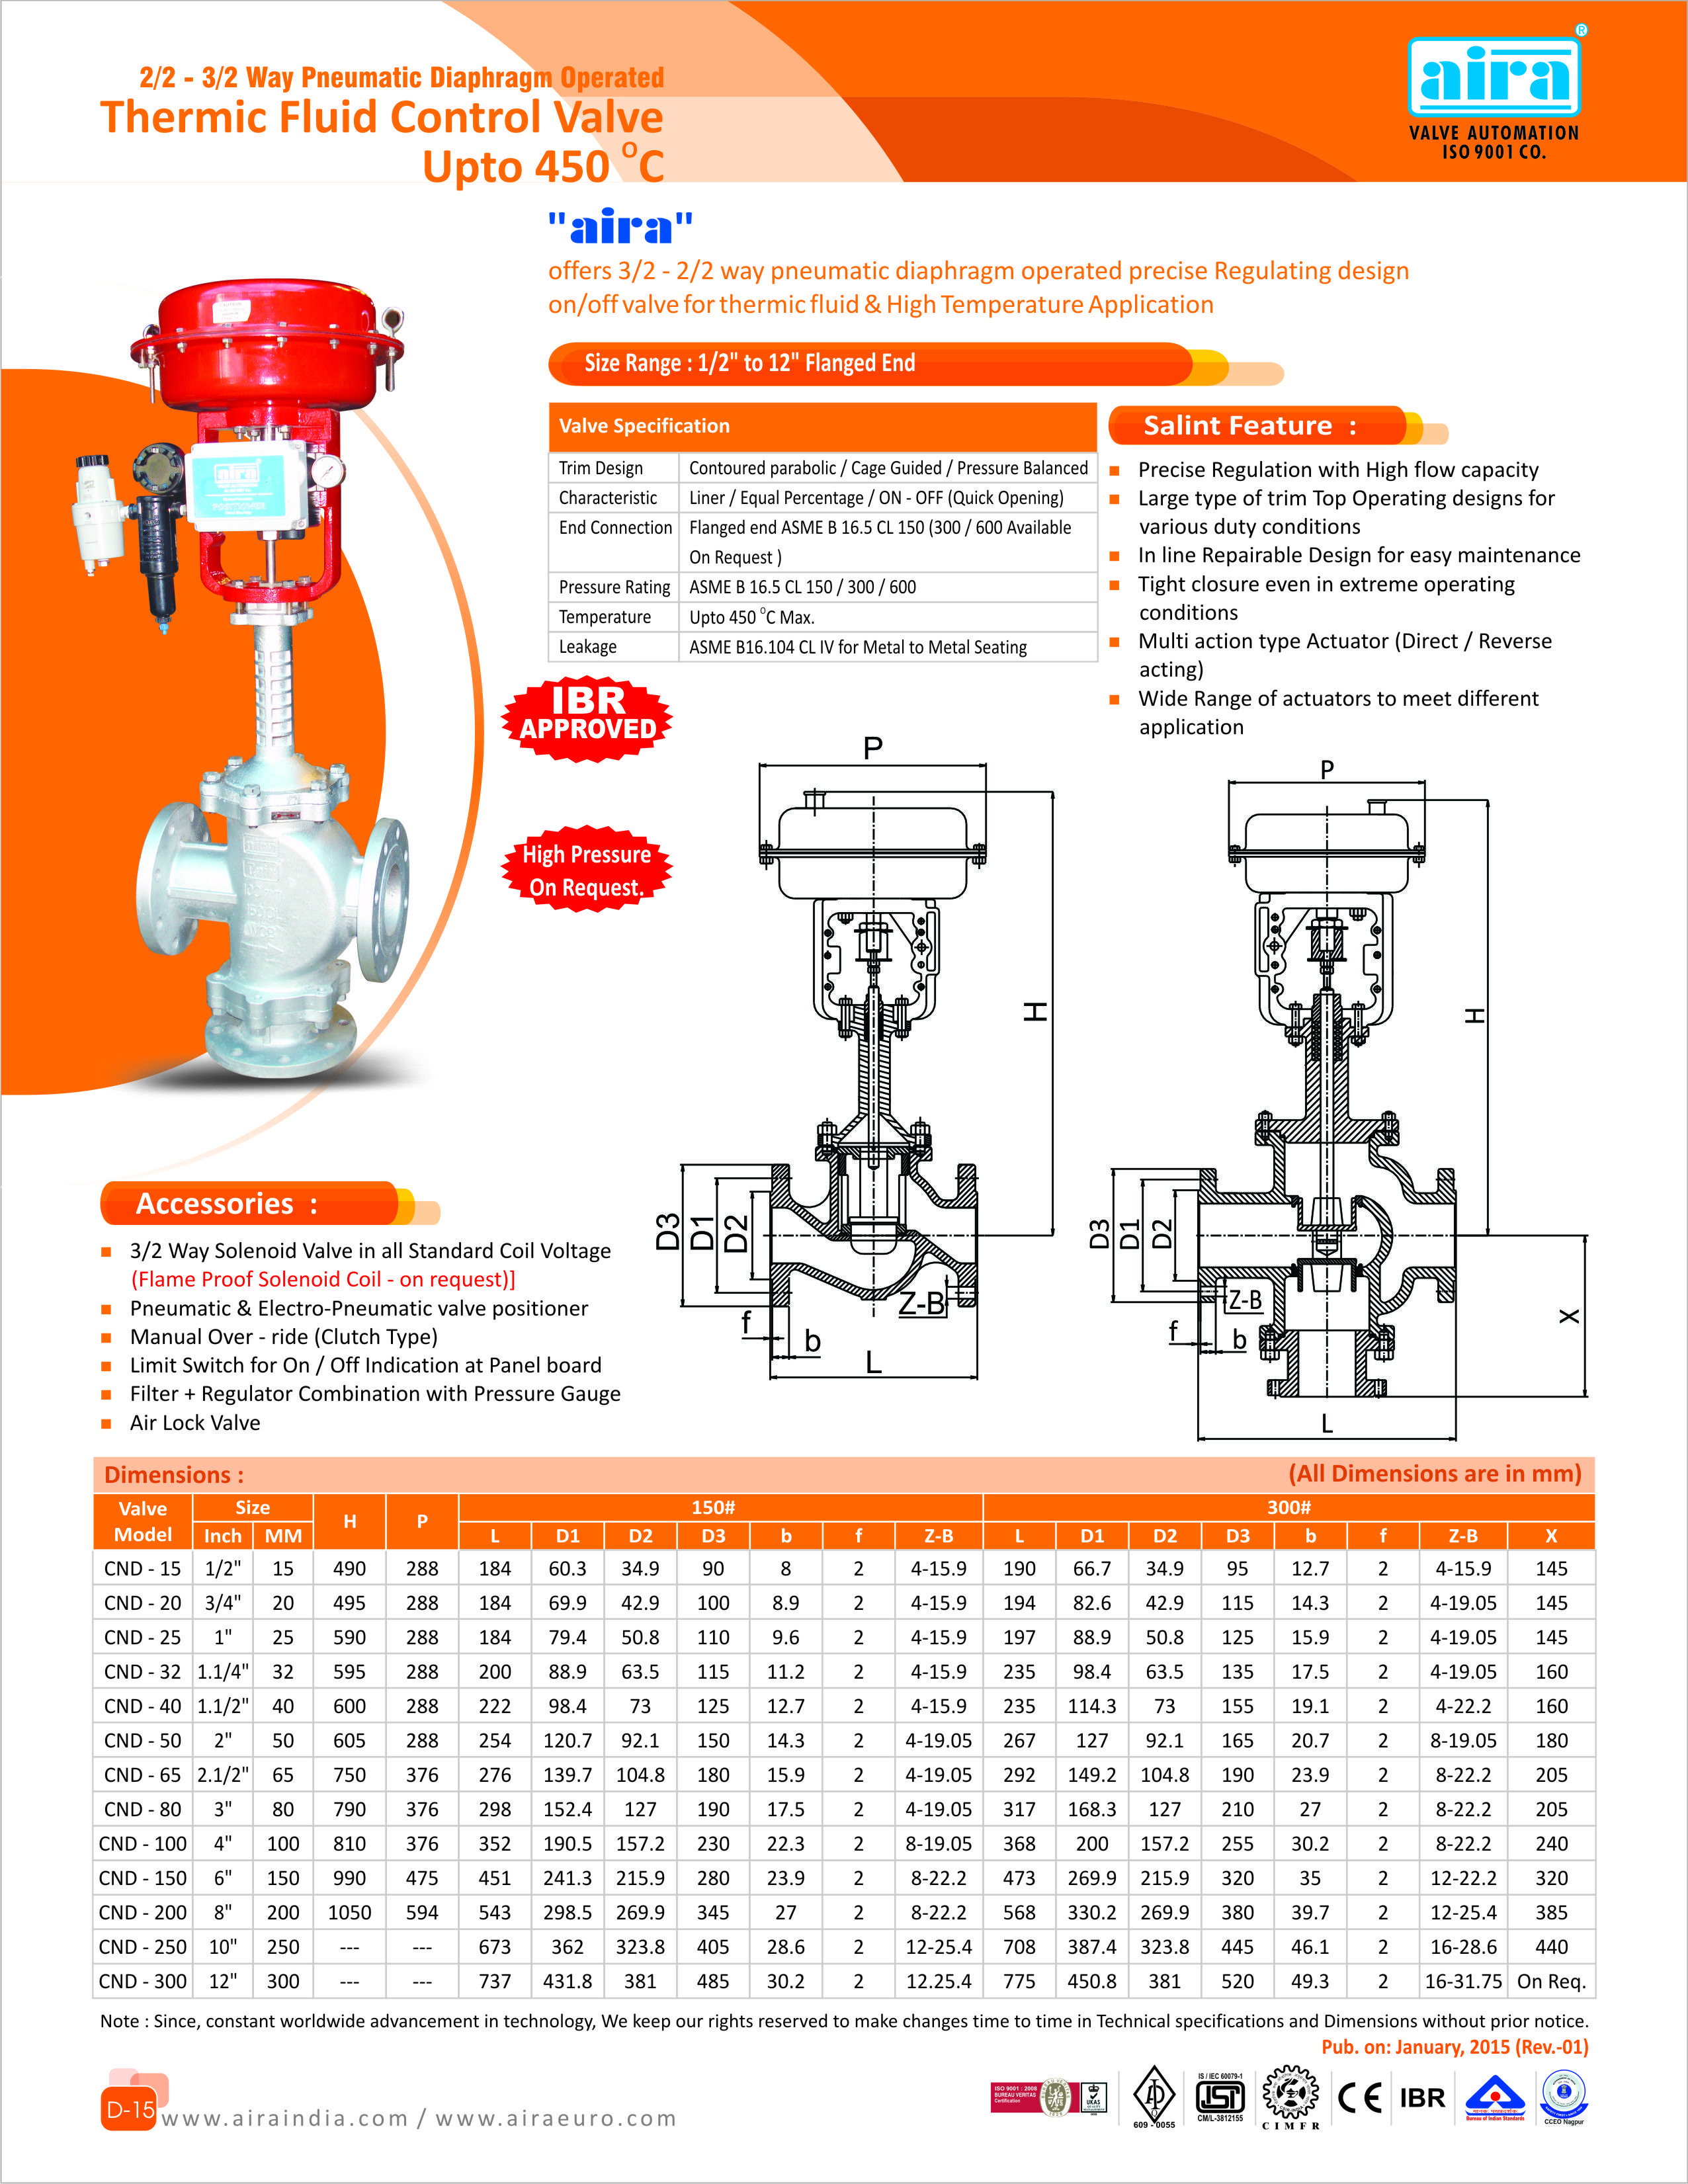 22 32 way pneumatic diaphragm operated thermic fluid control valve 22 32 way pneumatic diaphragm operated thermic fluid control valve upto ccuart Gallery